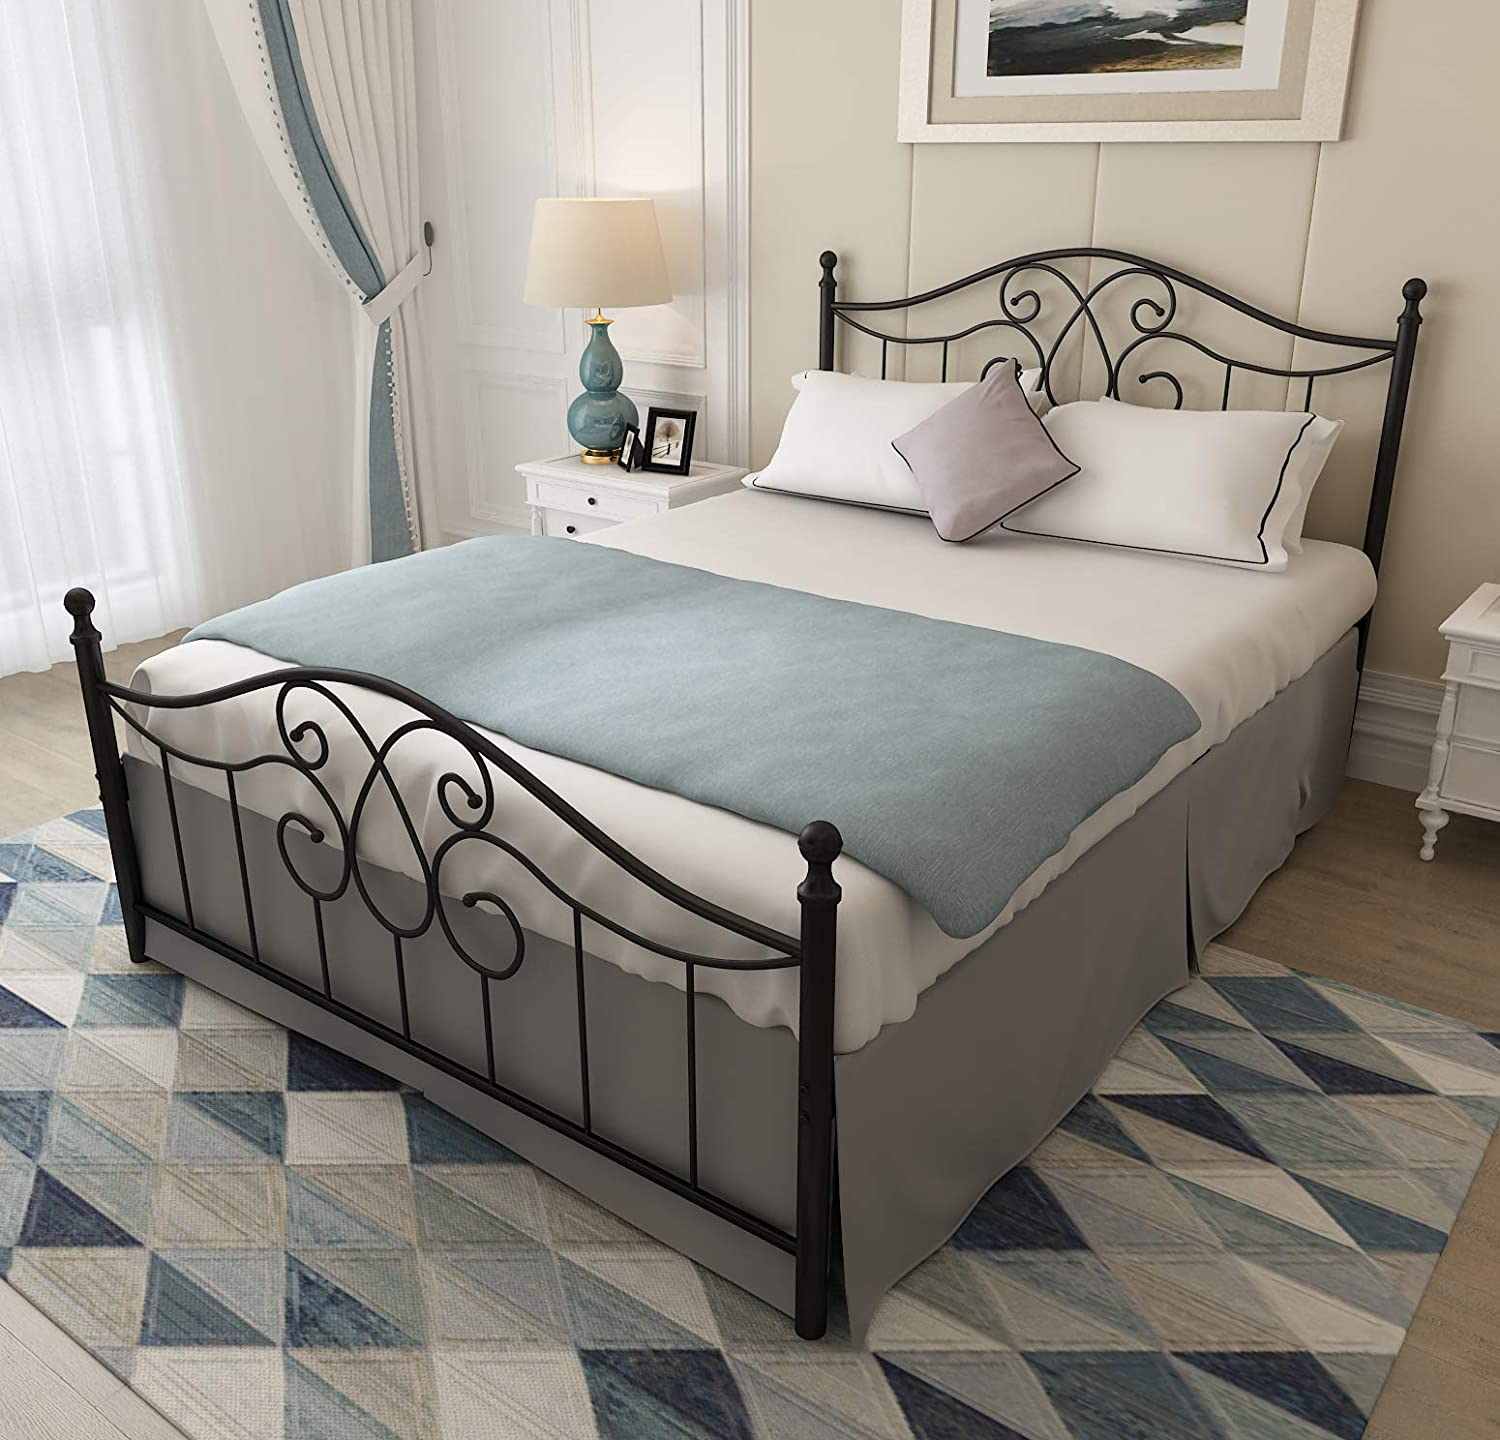 Queen Size Bed Frame with Headboard and Footboard Metal Bed Frame Queen